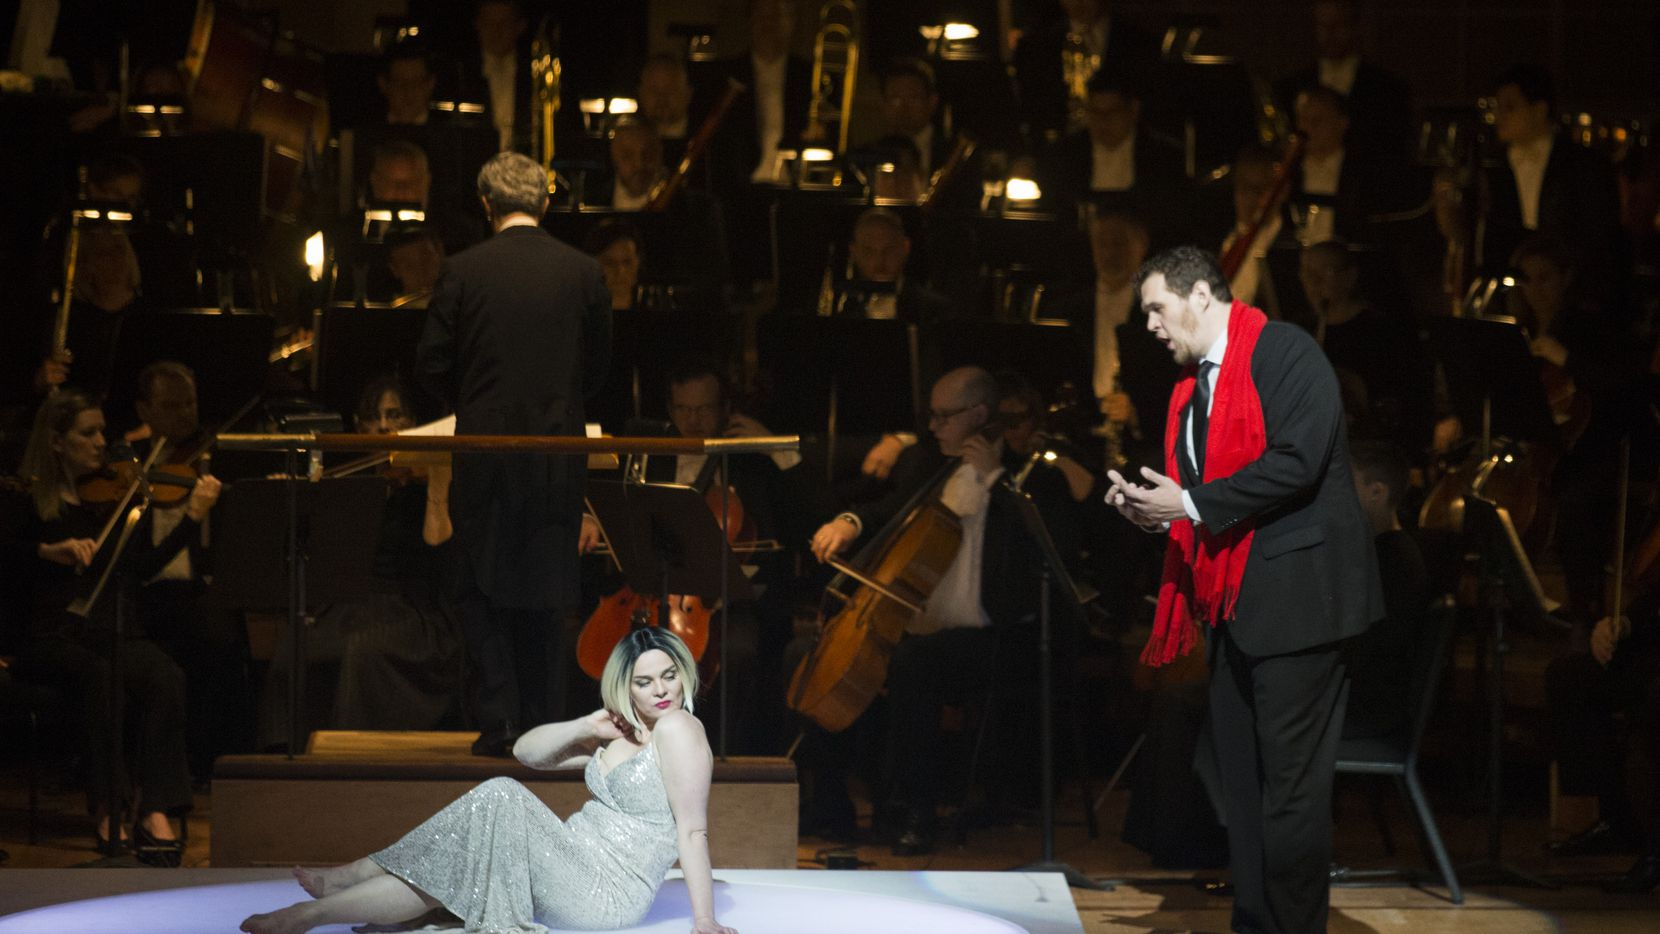 "Richard Trey Smagur, as Narraboth (right), pleads with Ausrine Stundyte, as Salome, in the Dallas Symphony Orchestra's performance of Strauss' ""Salome,"" conducted by Fabio Luisi on Friday, January 31, 2020 at the Meyerson Symphony Center in Dallas."